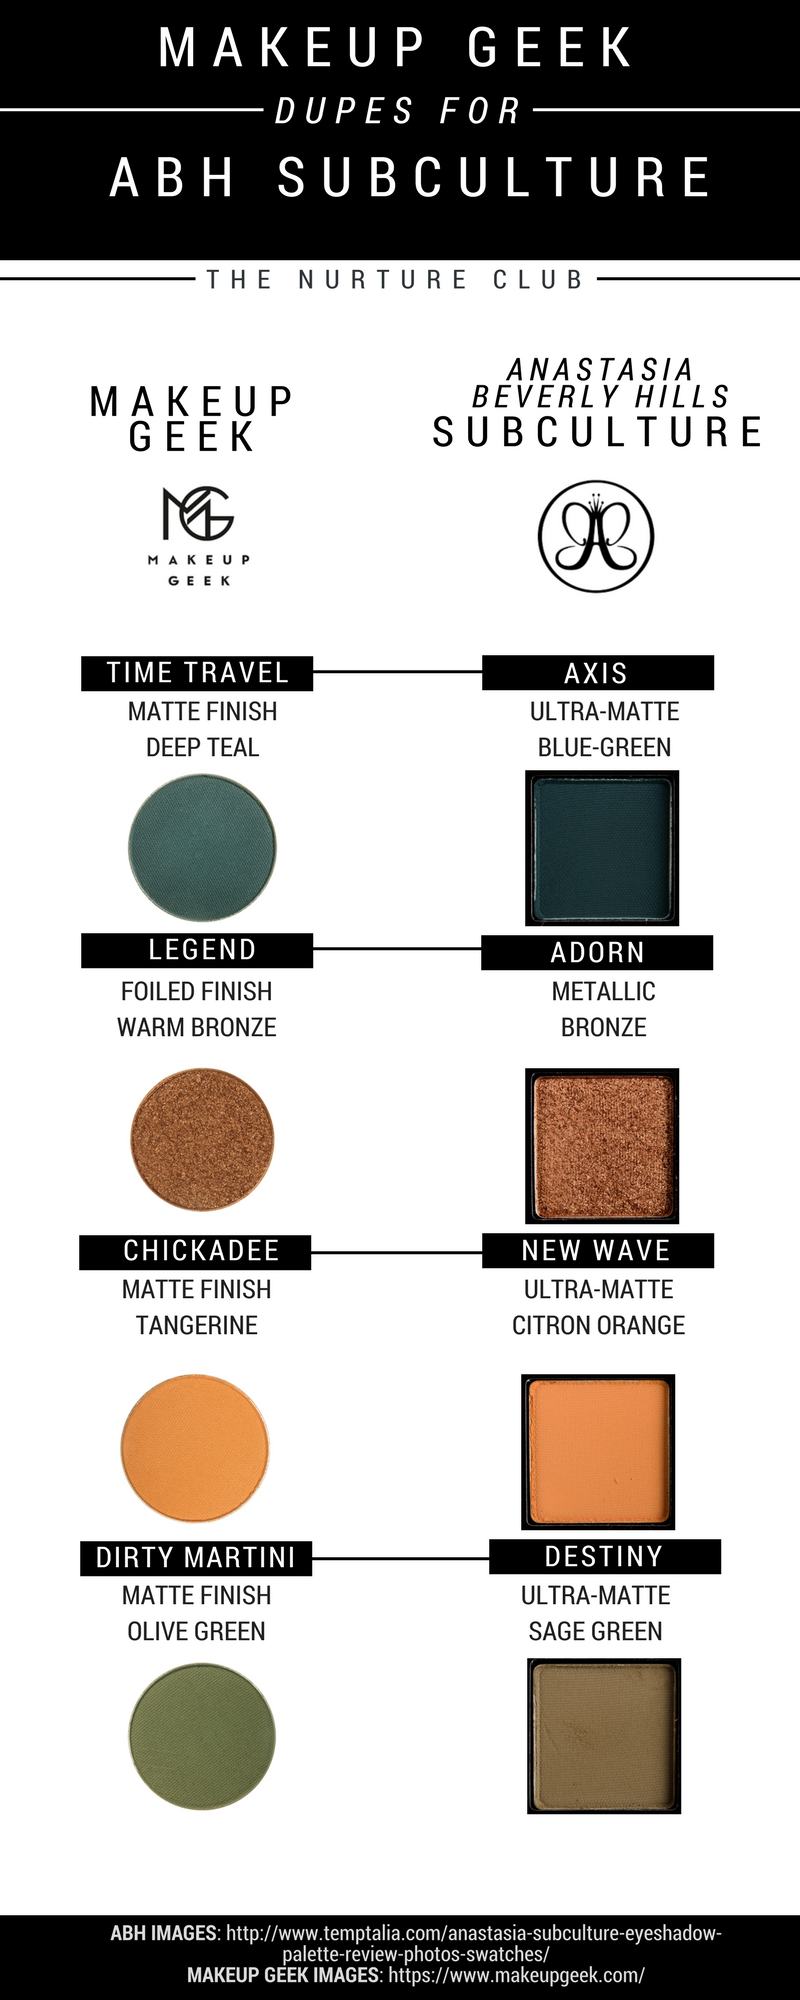 Passed on Subculture? Makeup Geek Dupes + Tutorial